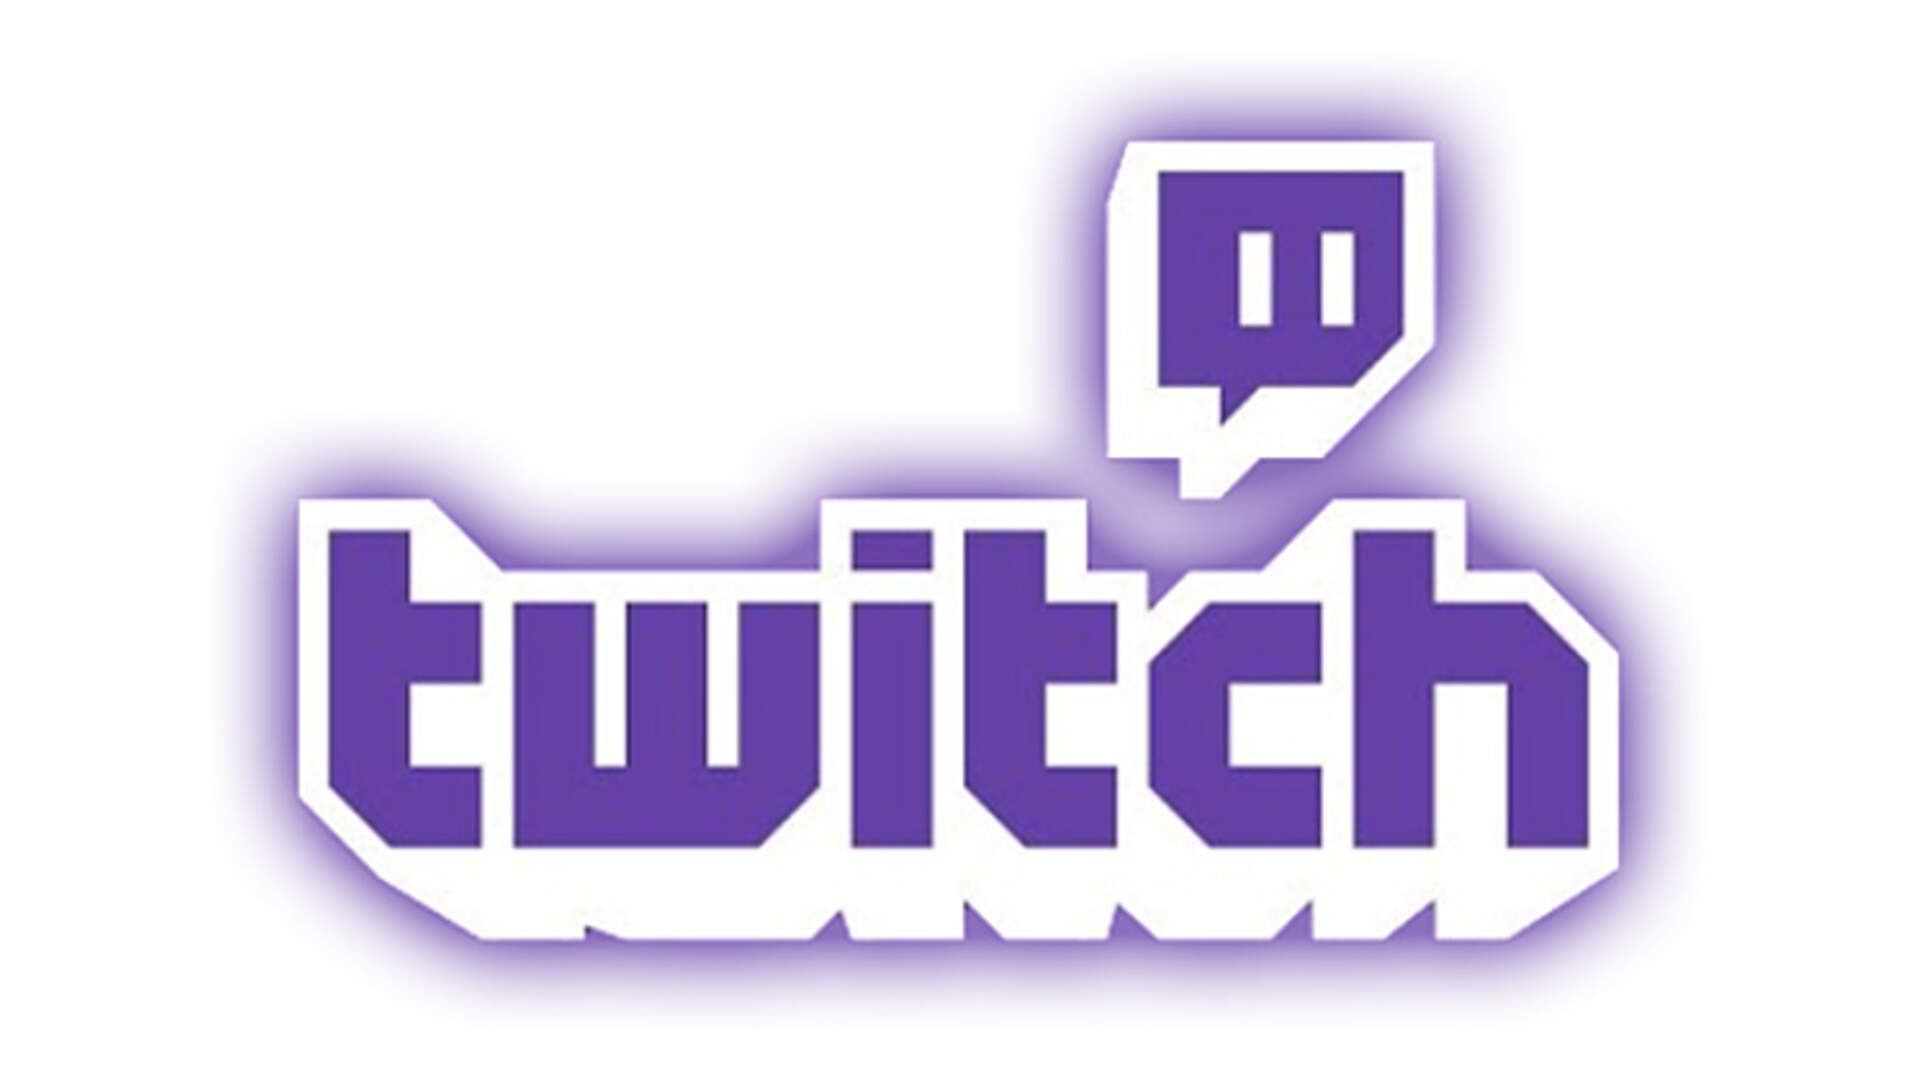 Twitch Begins Closed Beta for HTML5 Player